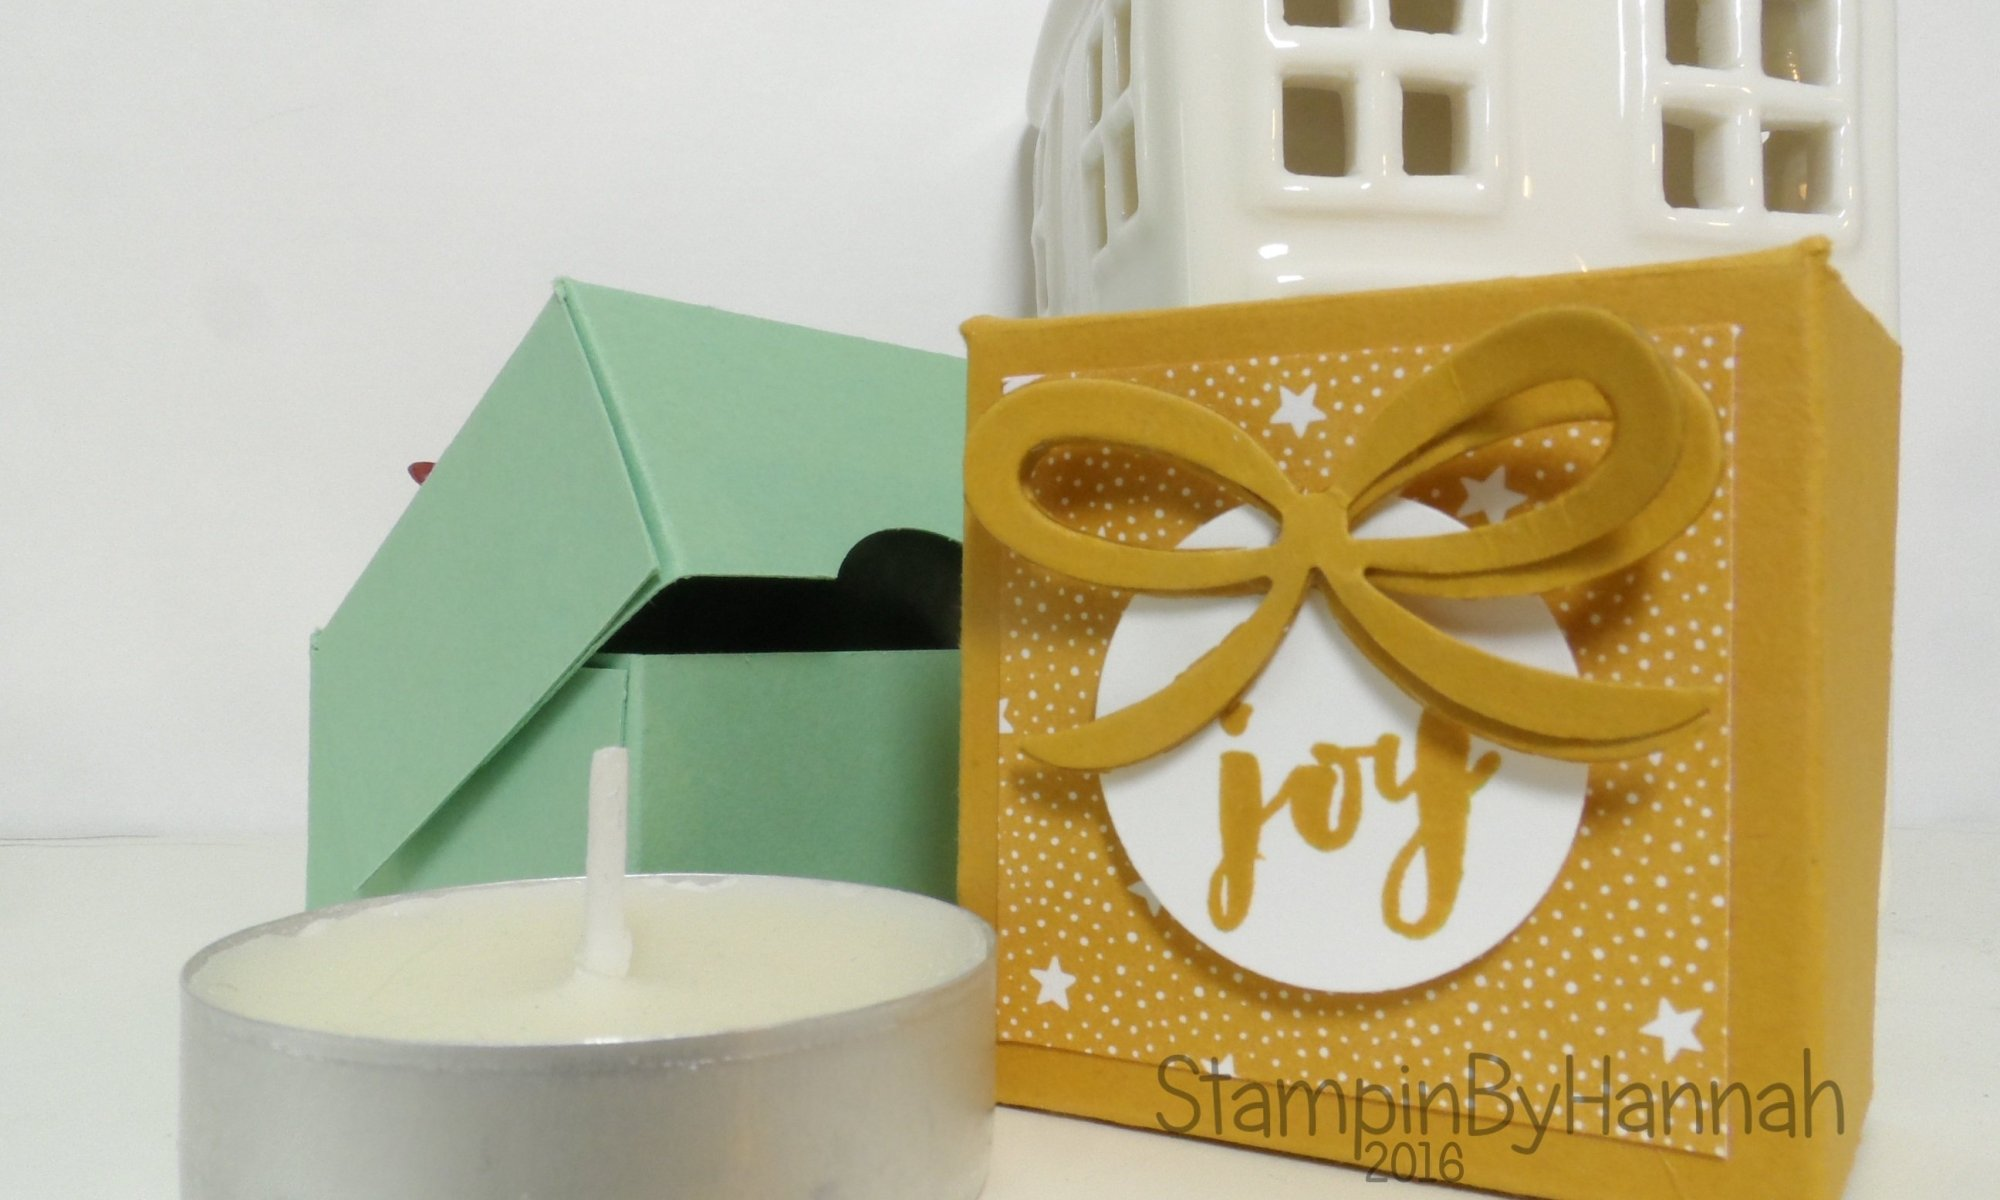 12 Days of Christmas single tealight box video tutorial using Christmas Pines from Stampin' Up! UK